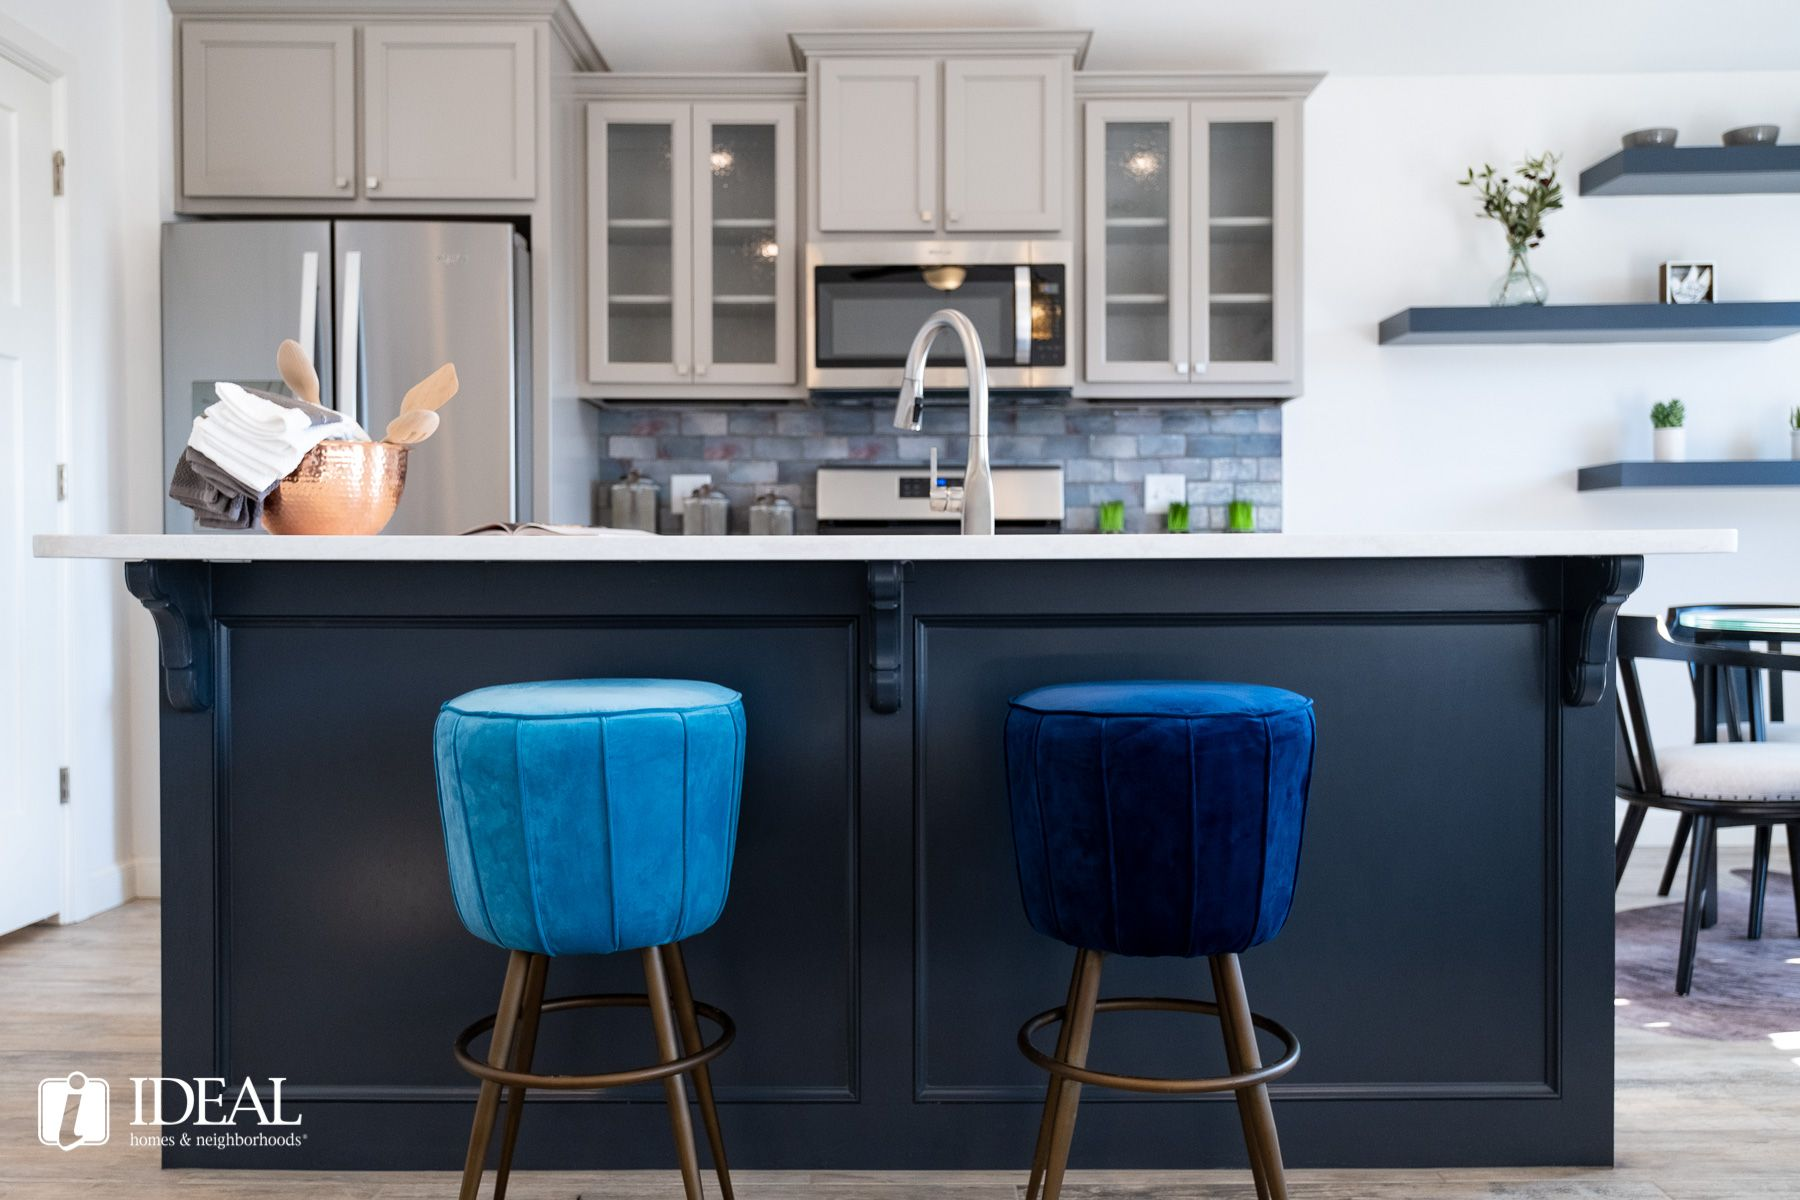 Kitchen featured in the Chadwick By Ideal Homes in Oklahoma City, OK